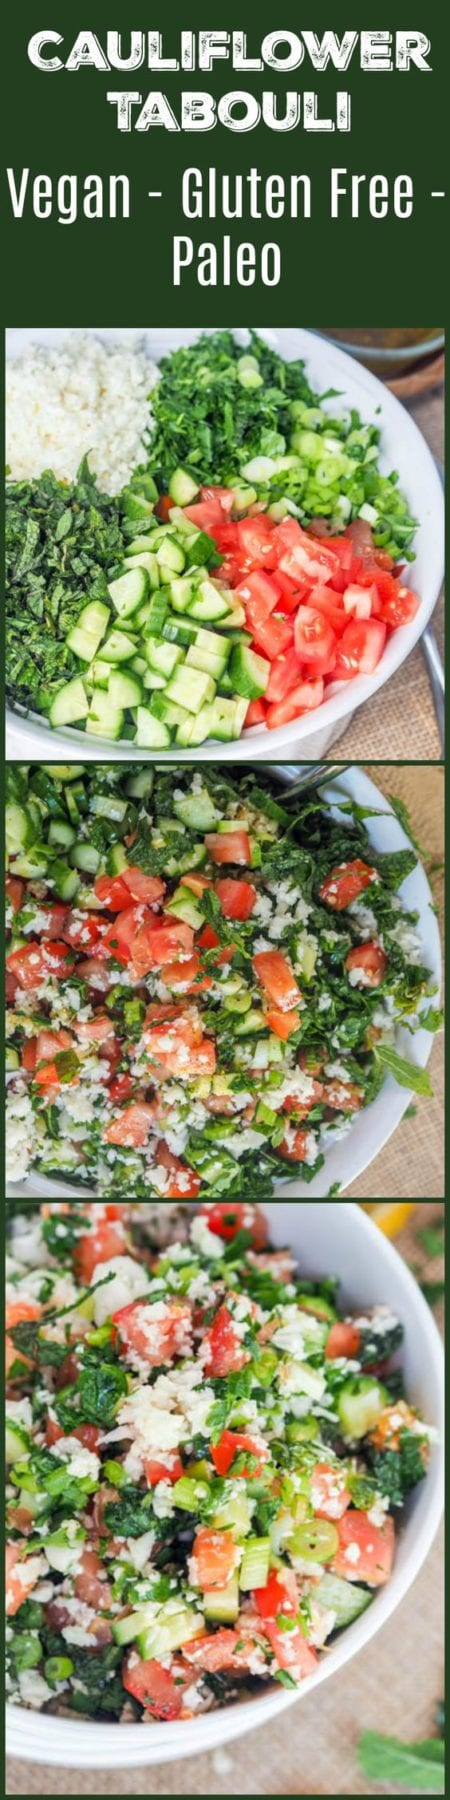 Tabouli that is low carb and gluten-free is bound to be your new favorite light summer salad. Instead of the traditional bulgar riced cauliflower is used along with tomatoes, cucumbers, mint, parsley, green onions, and walnuts. This dish is just brimming with fresh summer flavors. #Vegan too! #salad #meatlessmonday #healthy #paleo